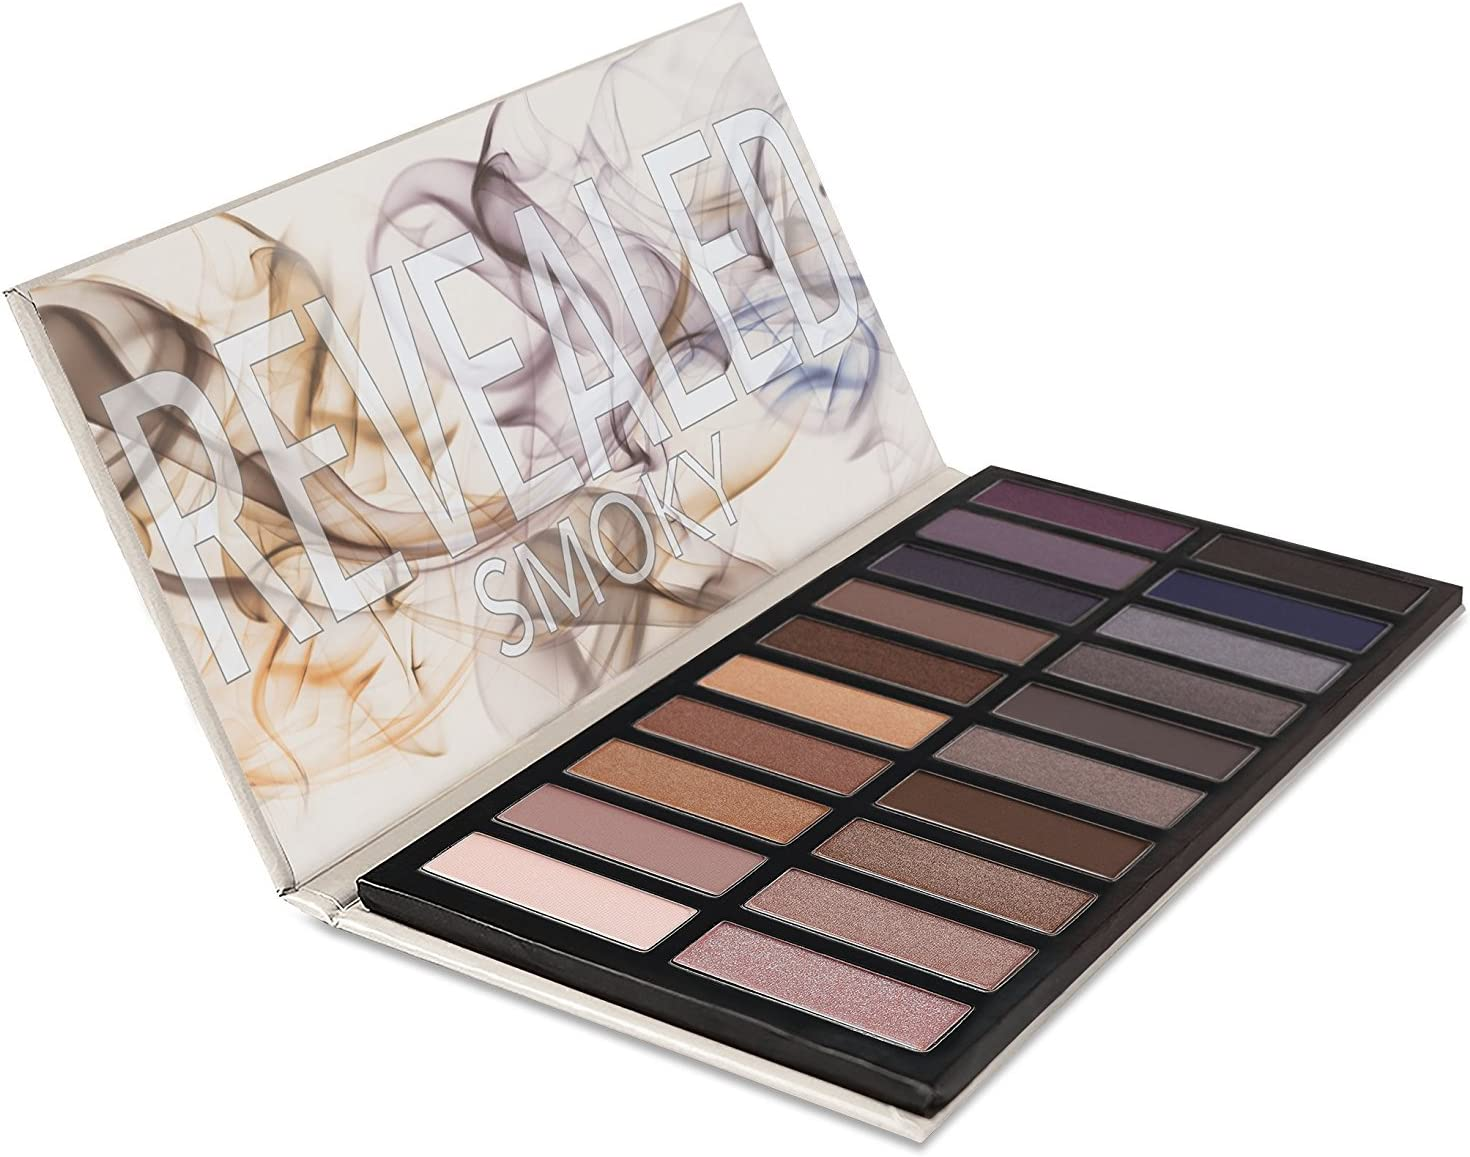 Coastal Scents Revealed Smoky Eyeshadow Palette